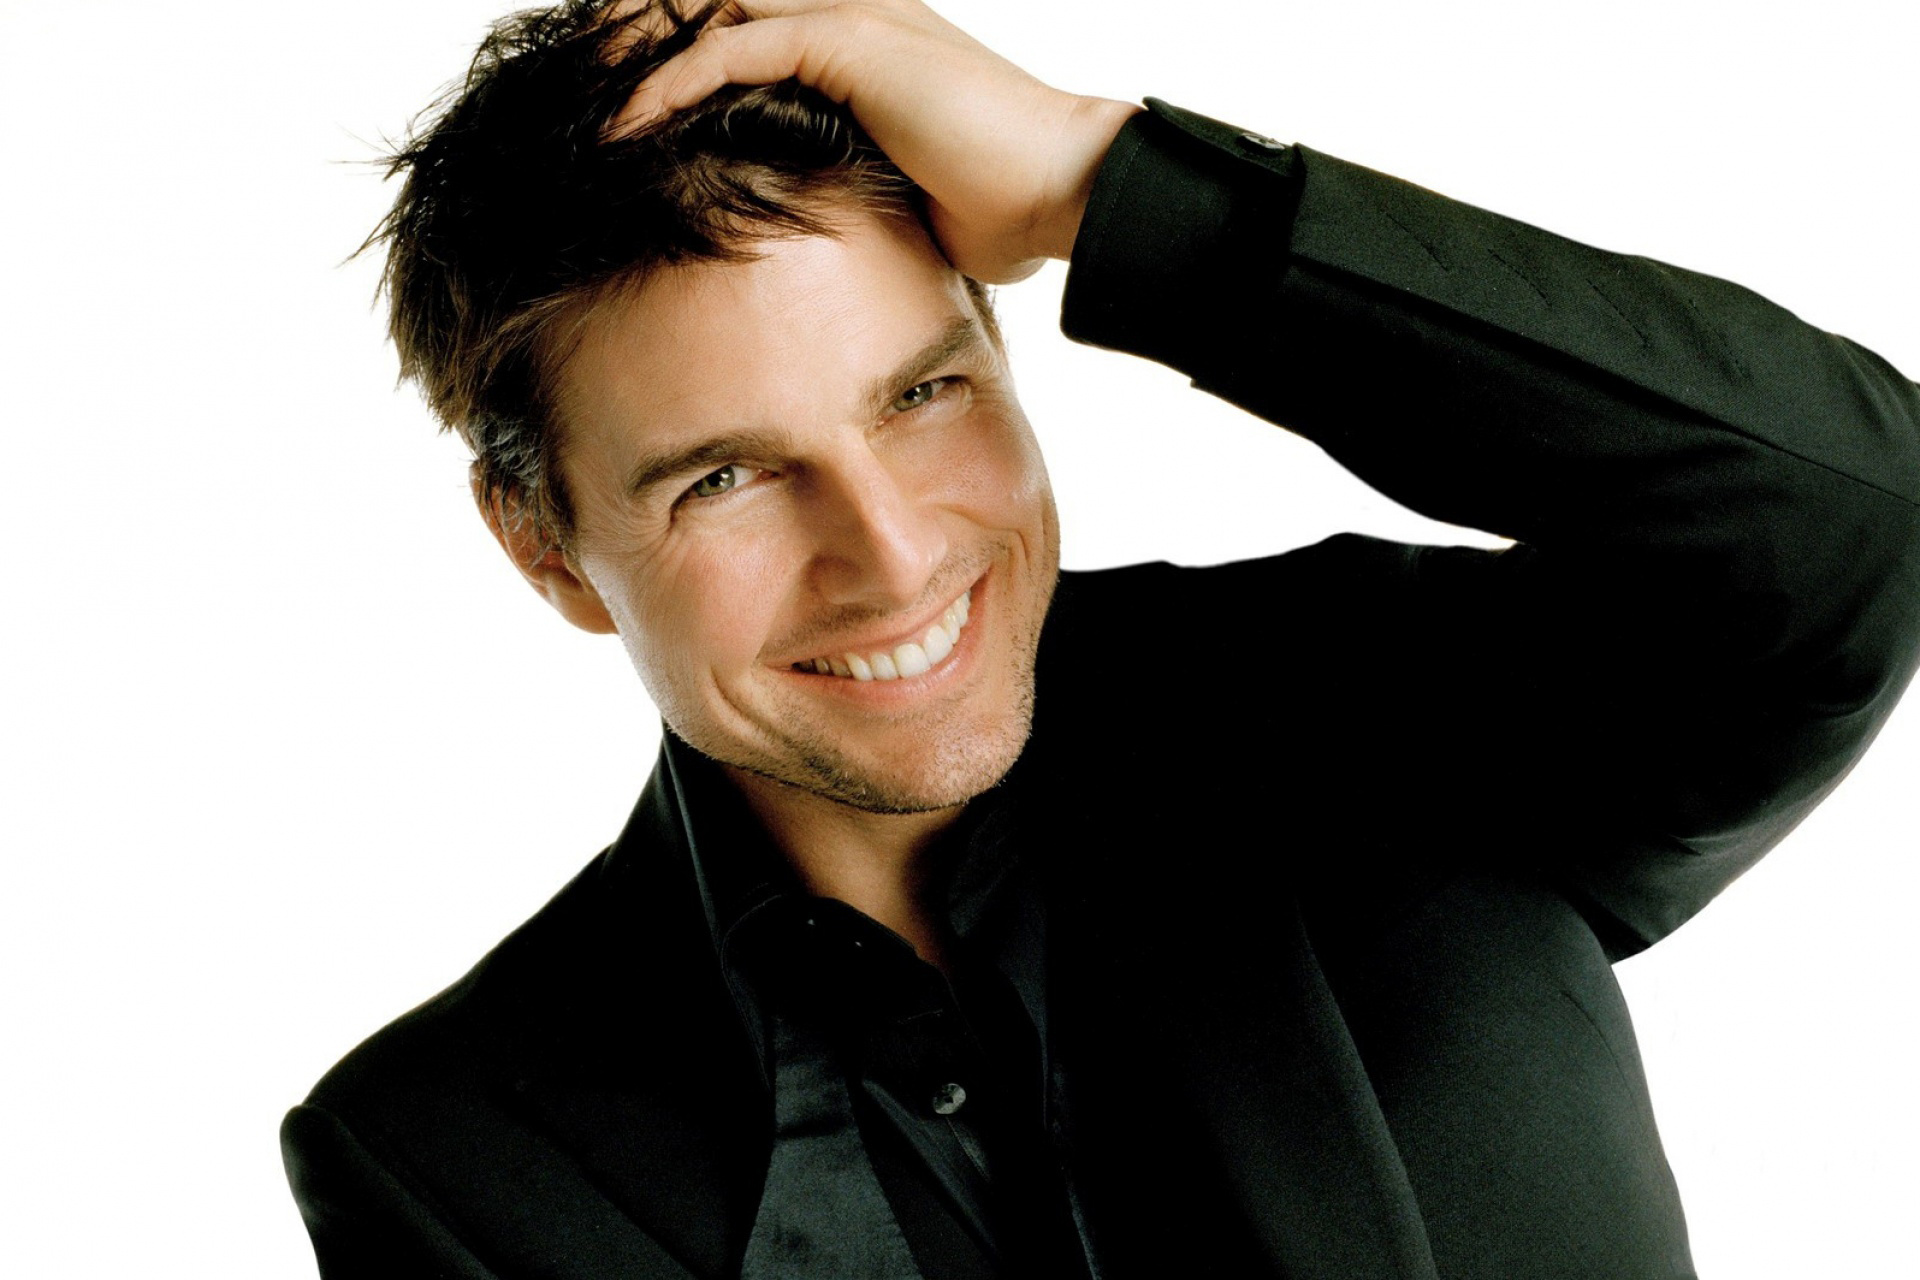 Funny Facts About Tom Cruise 19 Cool Hd Wallpaper